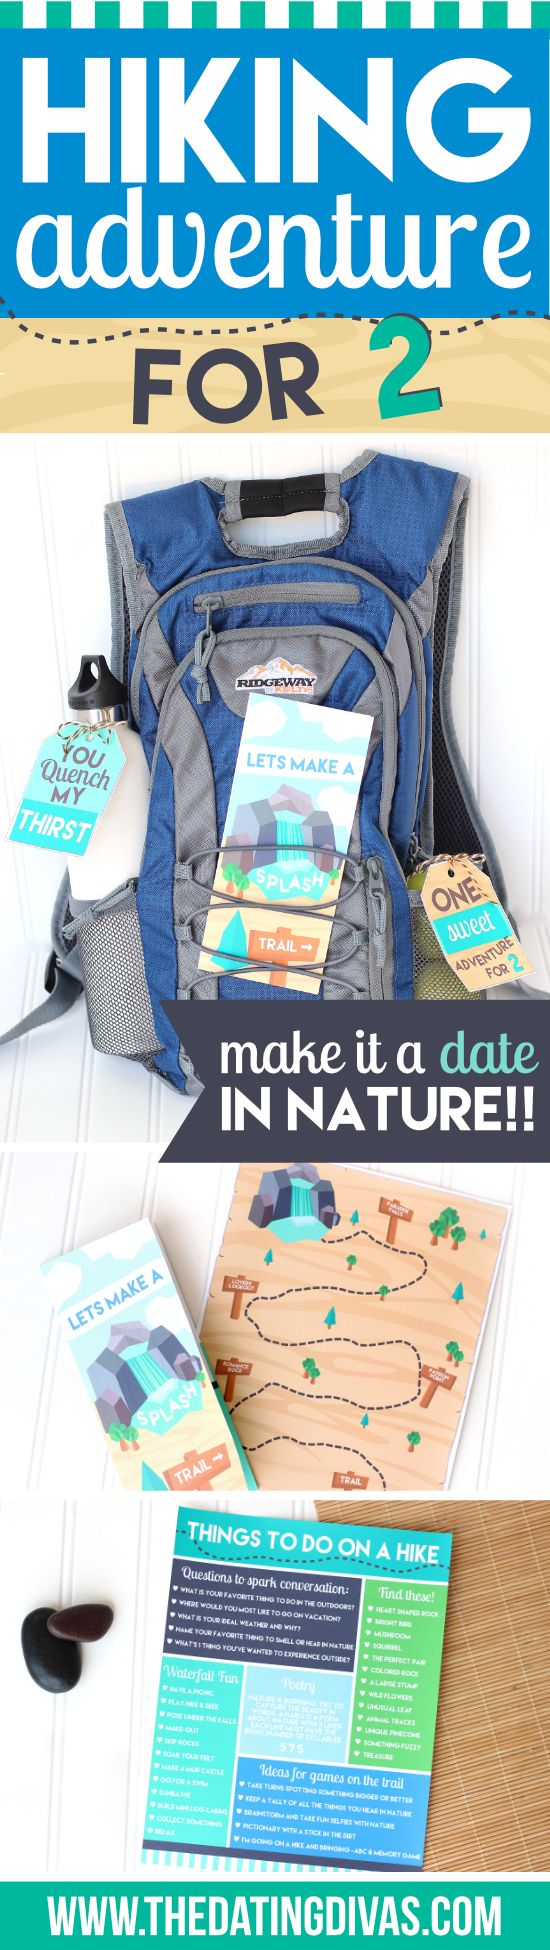 outdoors dating ideas Here are some terrific gift ideas for outdoorsy kids  gifts for outdoorsy kids  give them a gift that will keep them active outdoors like sports equipment,.